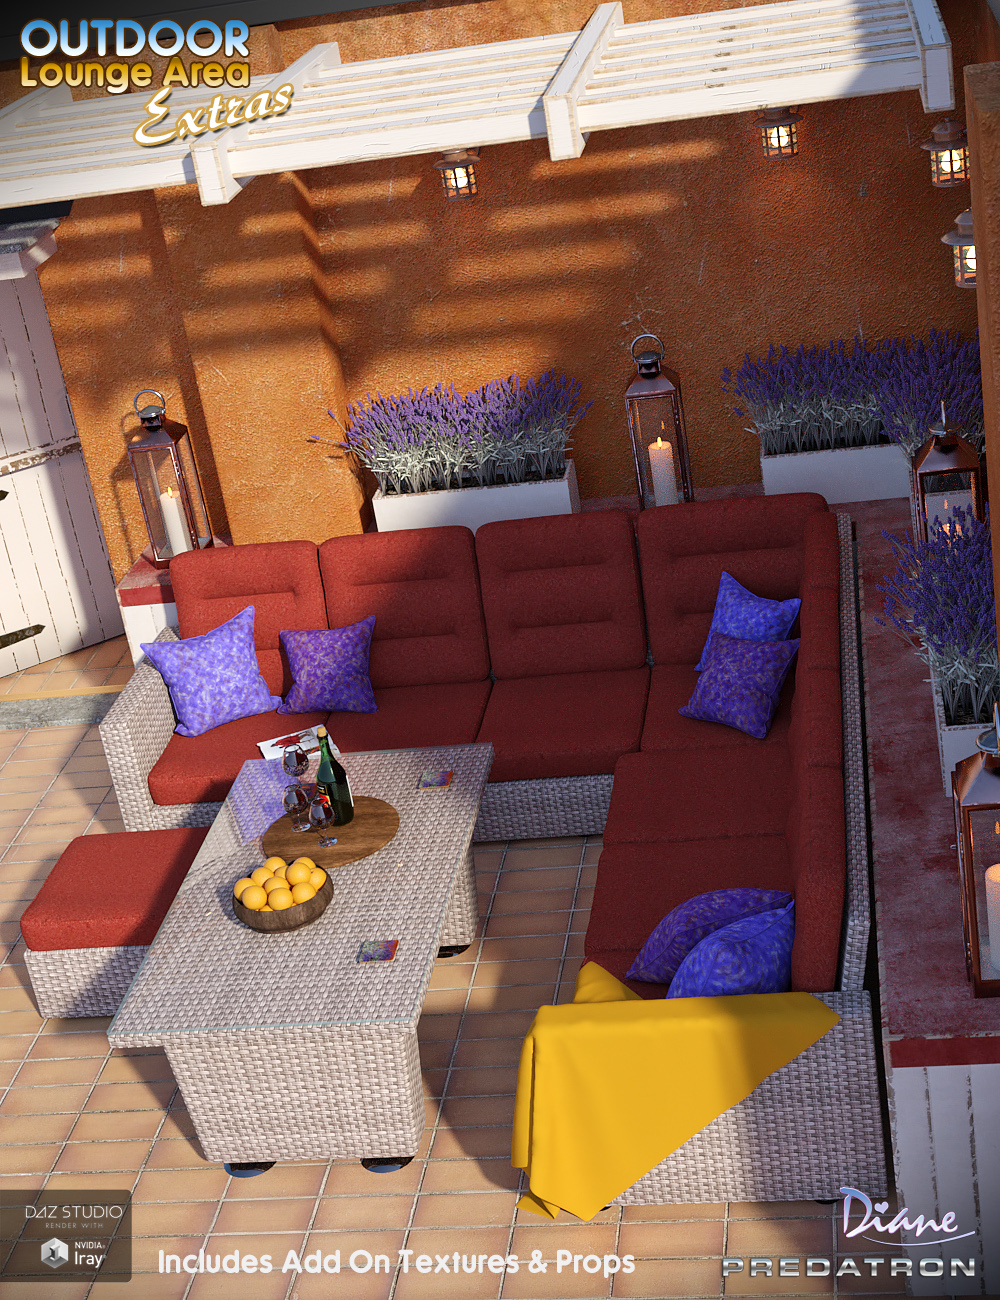 Outdoor Lounge Area Extras by: DianePredatron, 3D Models by Daz 3D